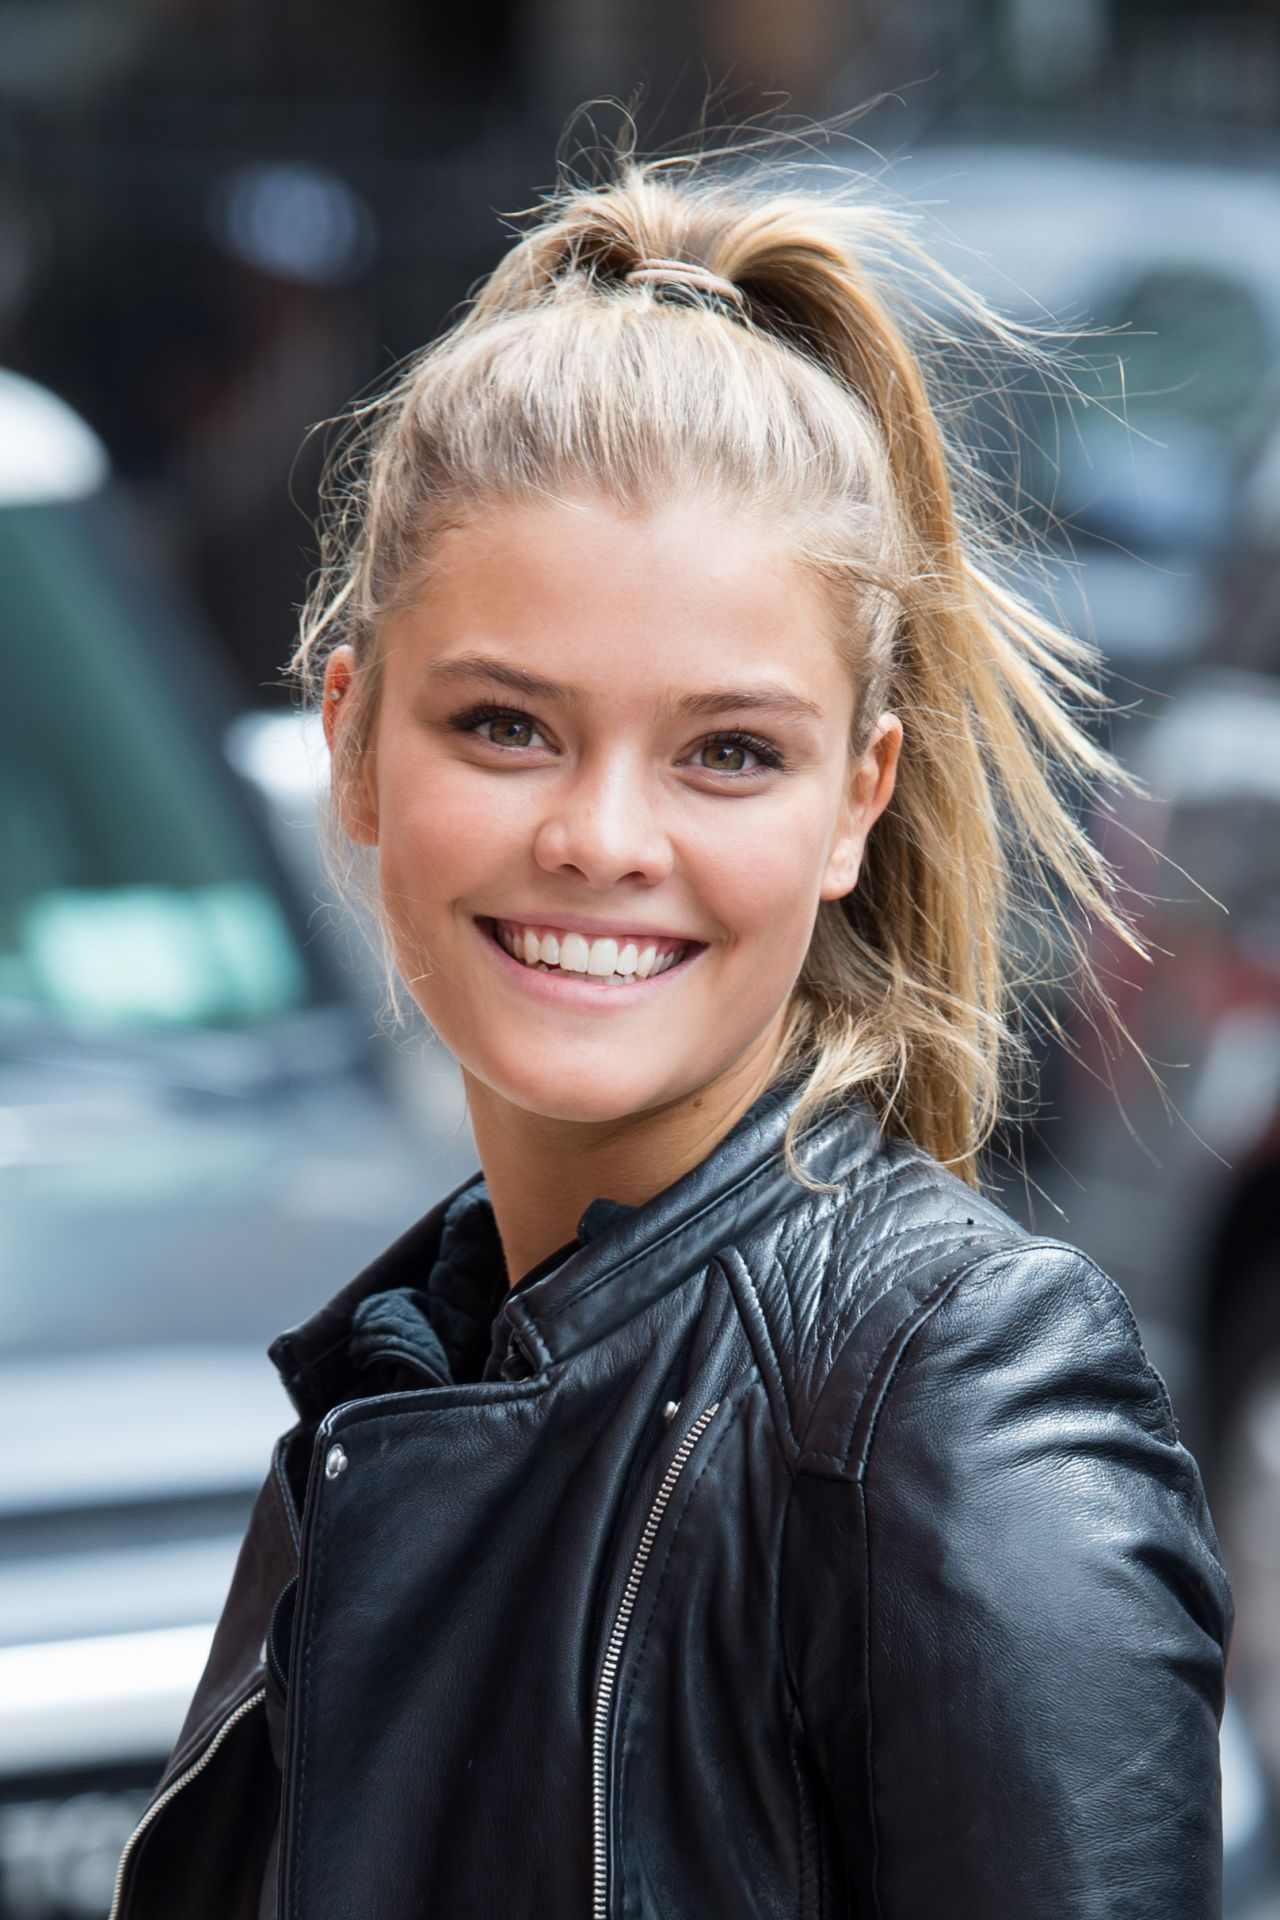 Nina Agdal In New York City On The Streets Of Manhattan